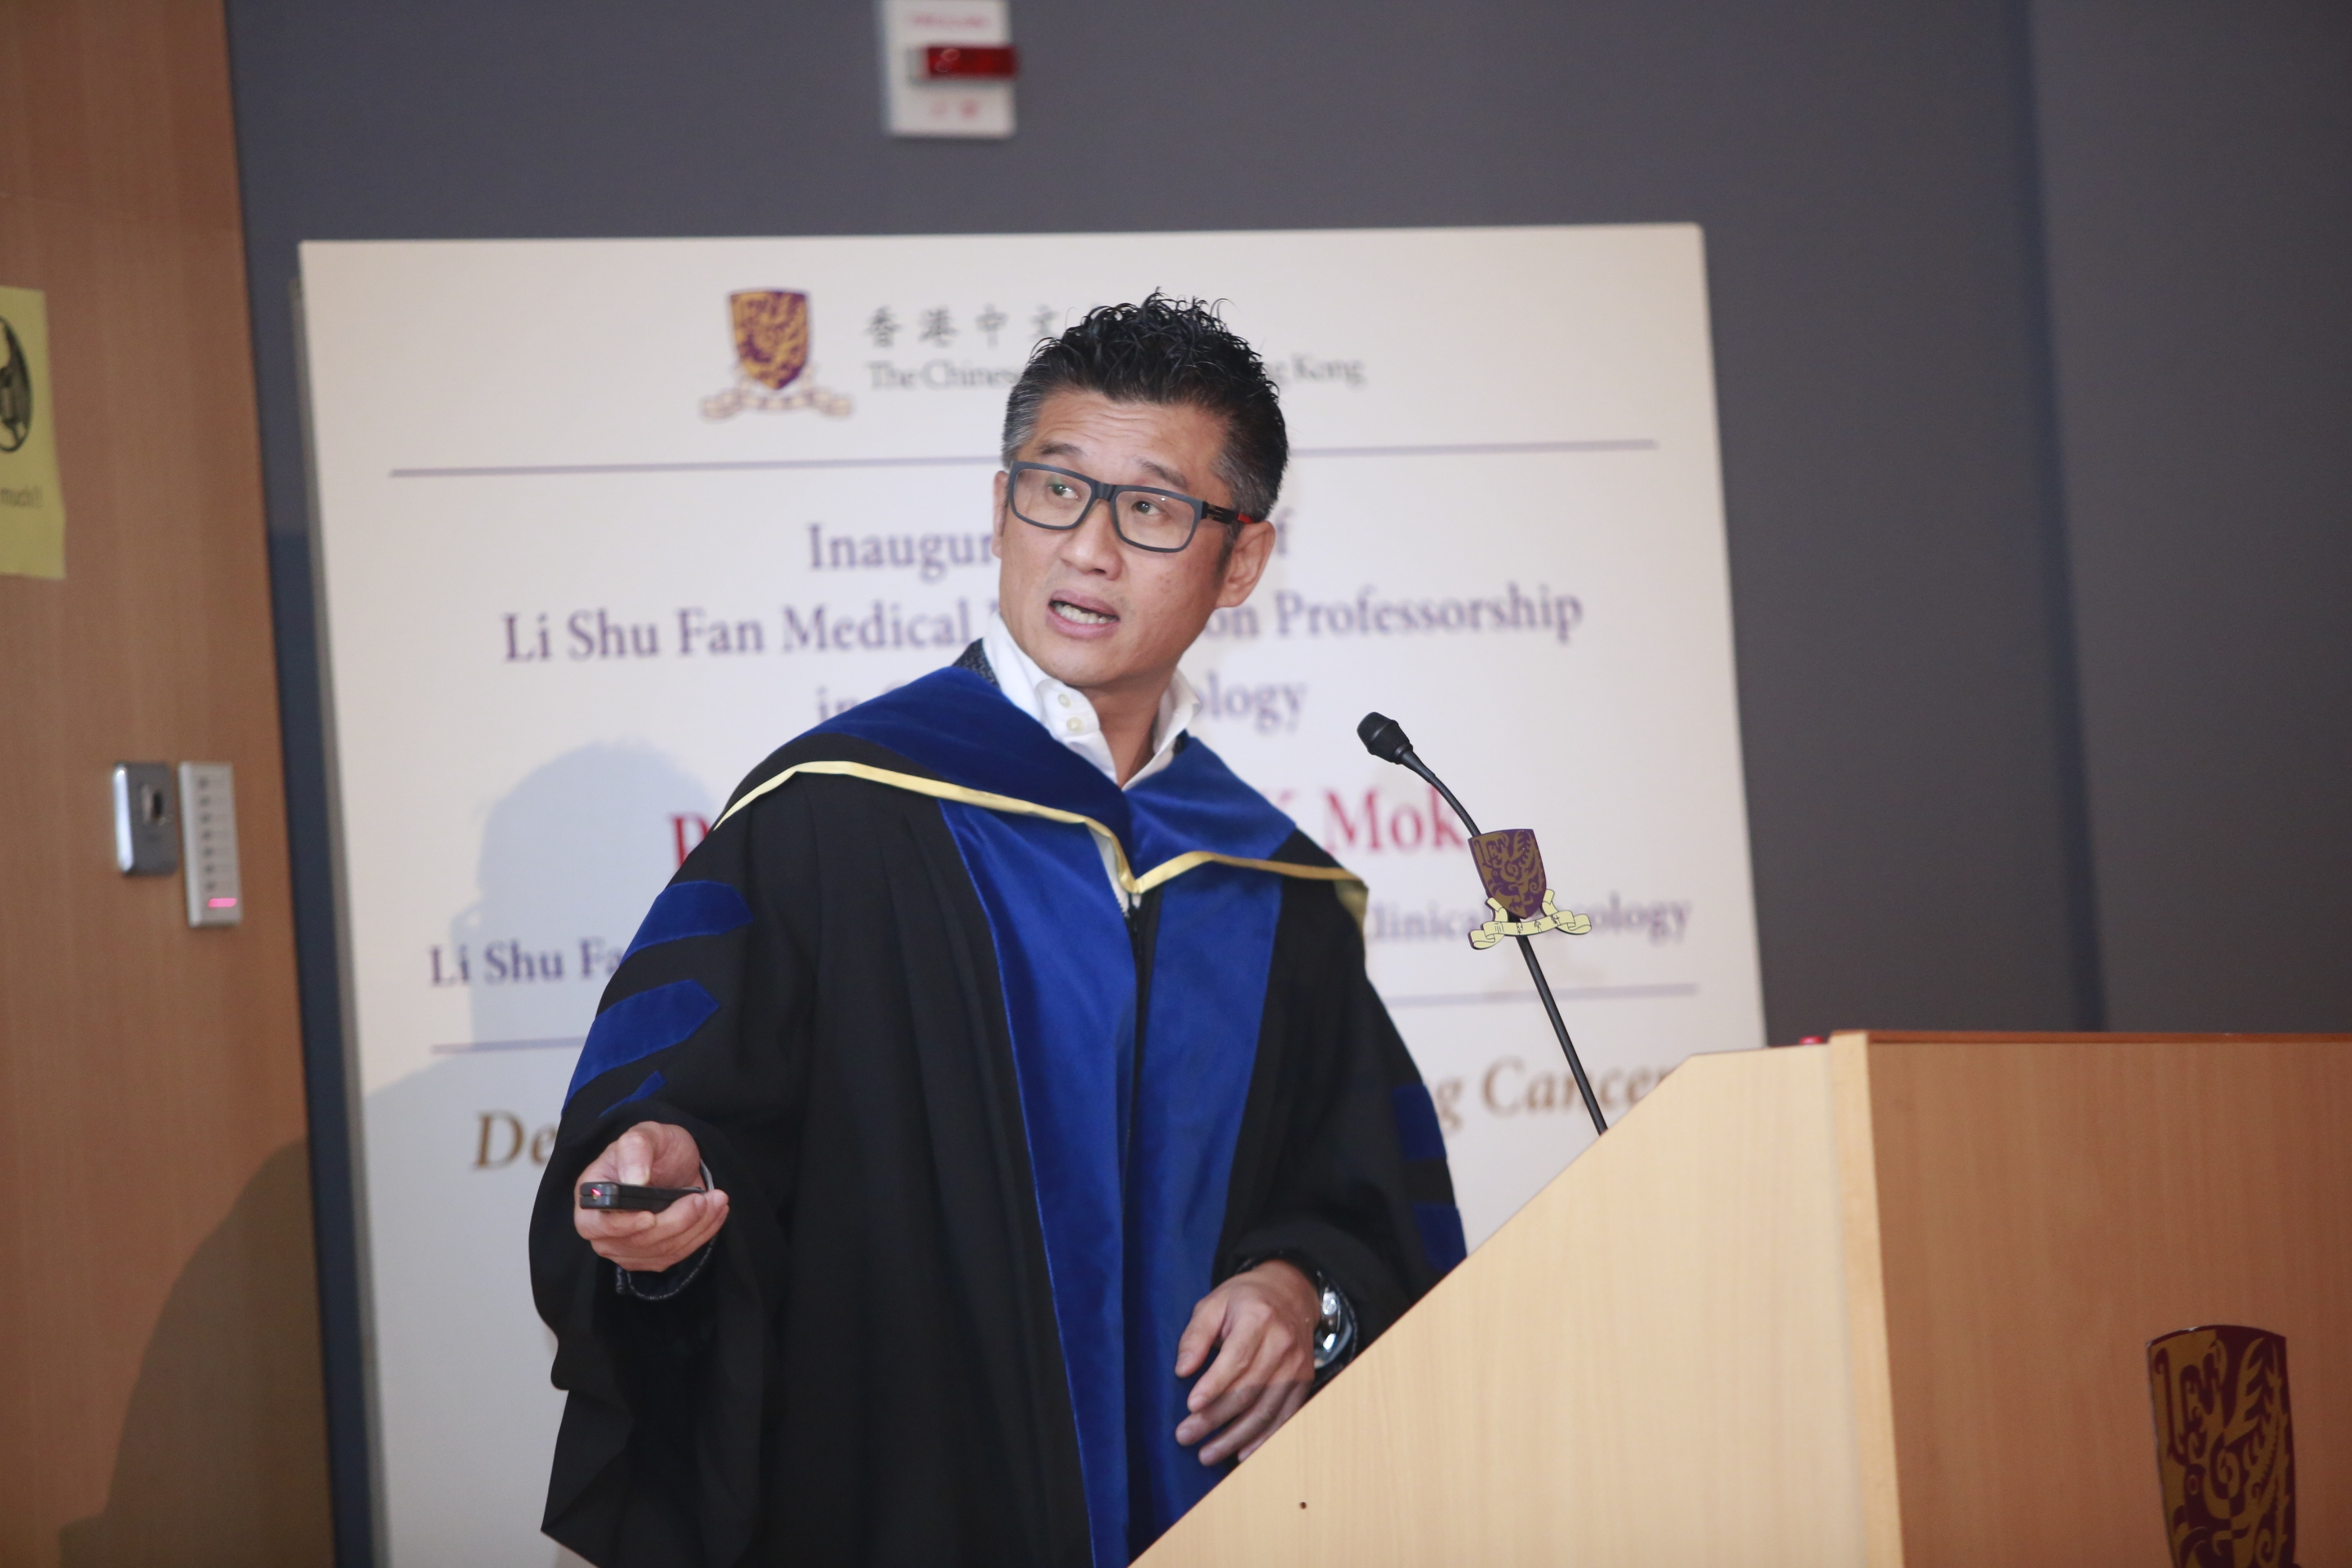 Prof. Tony Mok delivers his inaugural lecture as Li Shu Fan Medical Foundation Professor of Clinical Oncology.